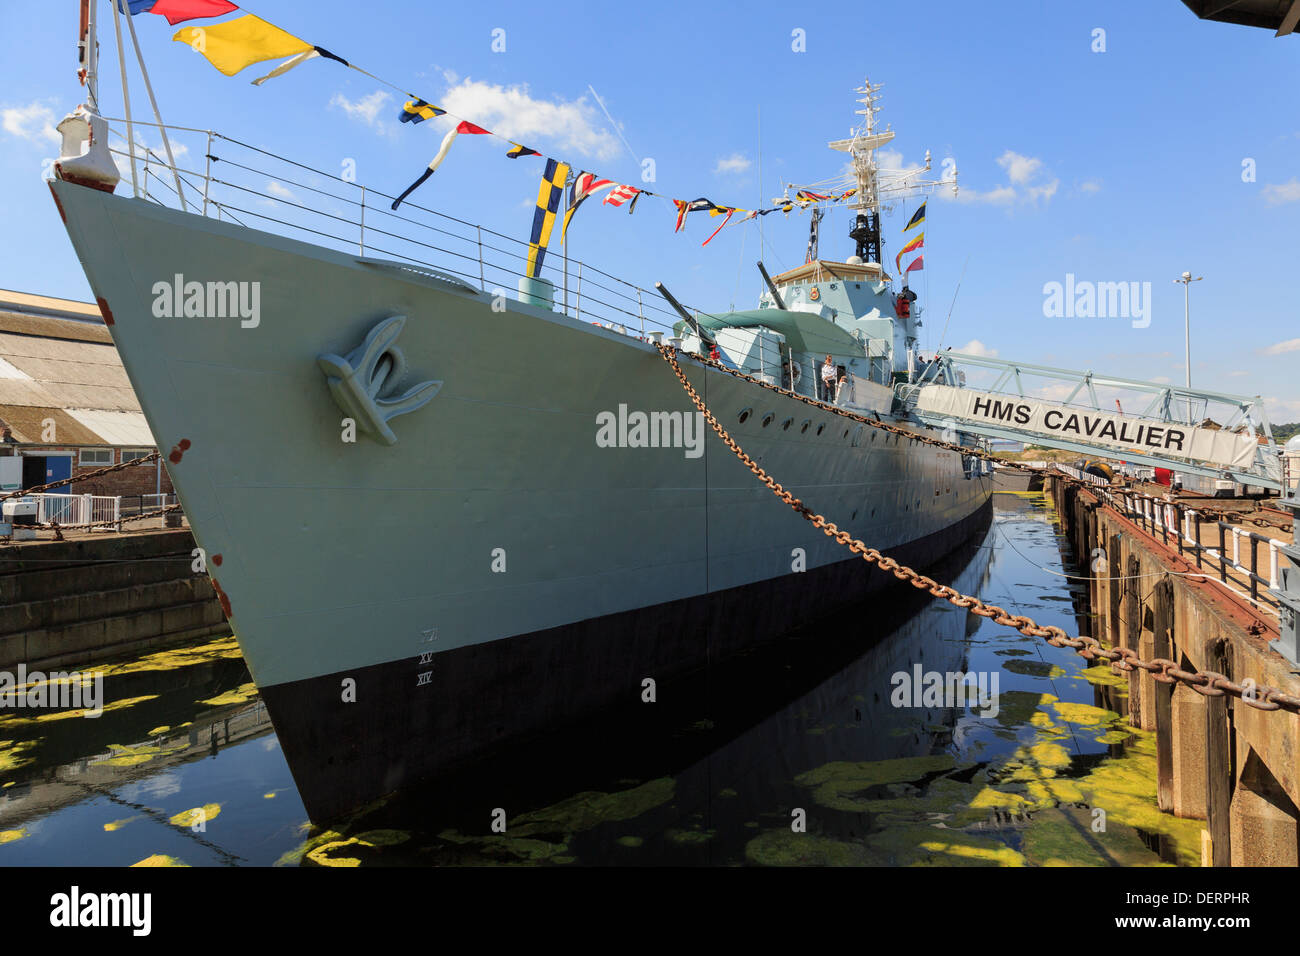 HMS Cavalier Royal Navy C-class destroyer warship at maritime heritage museum in Historic Dockyard at Chatham Kent England UK - Stock Image